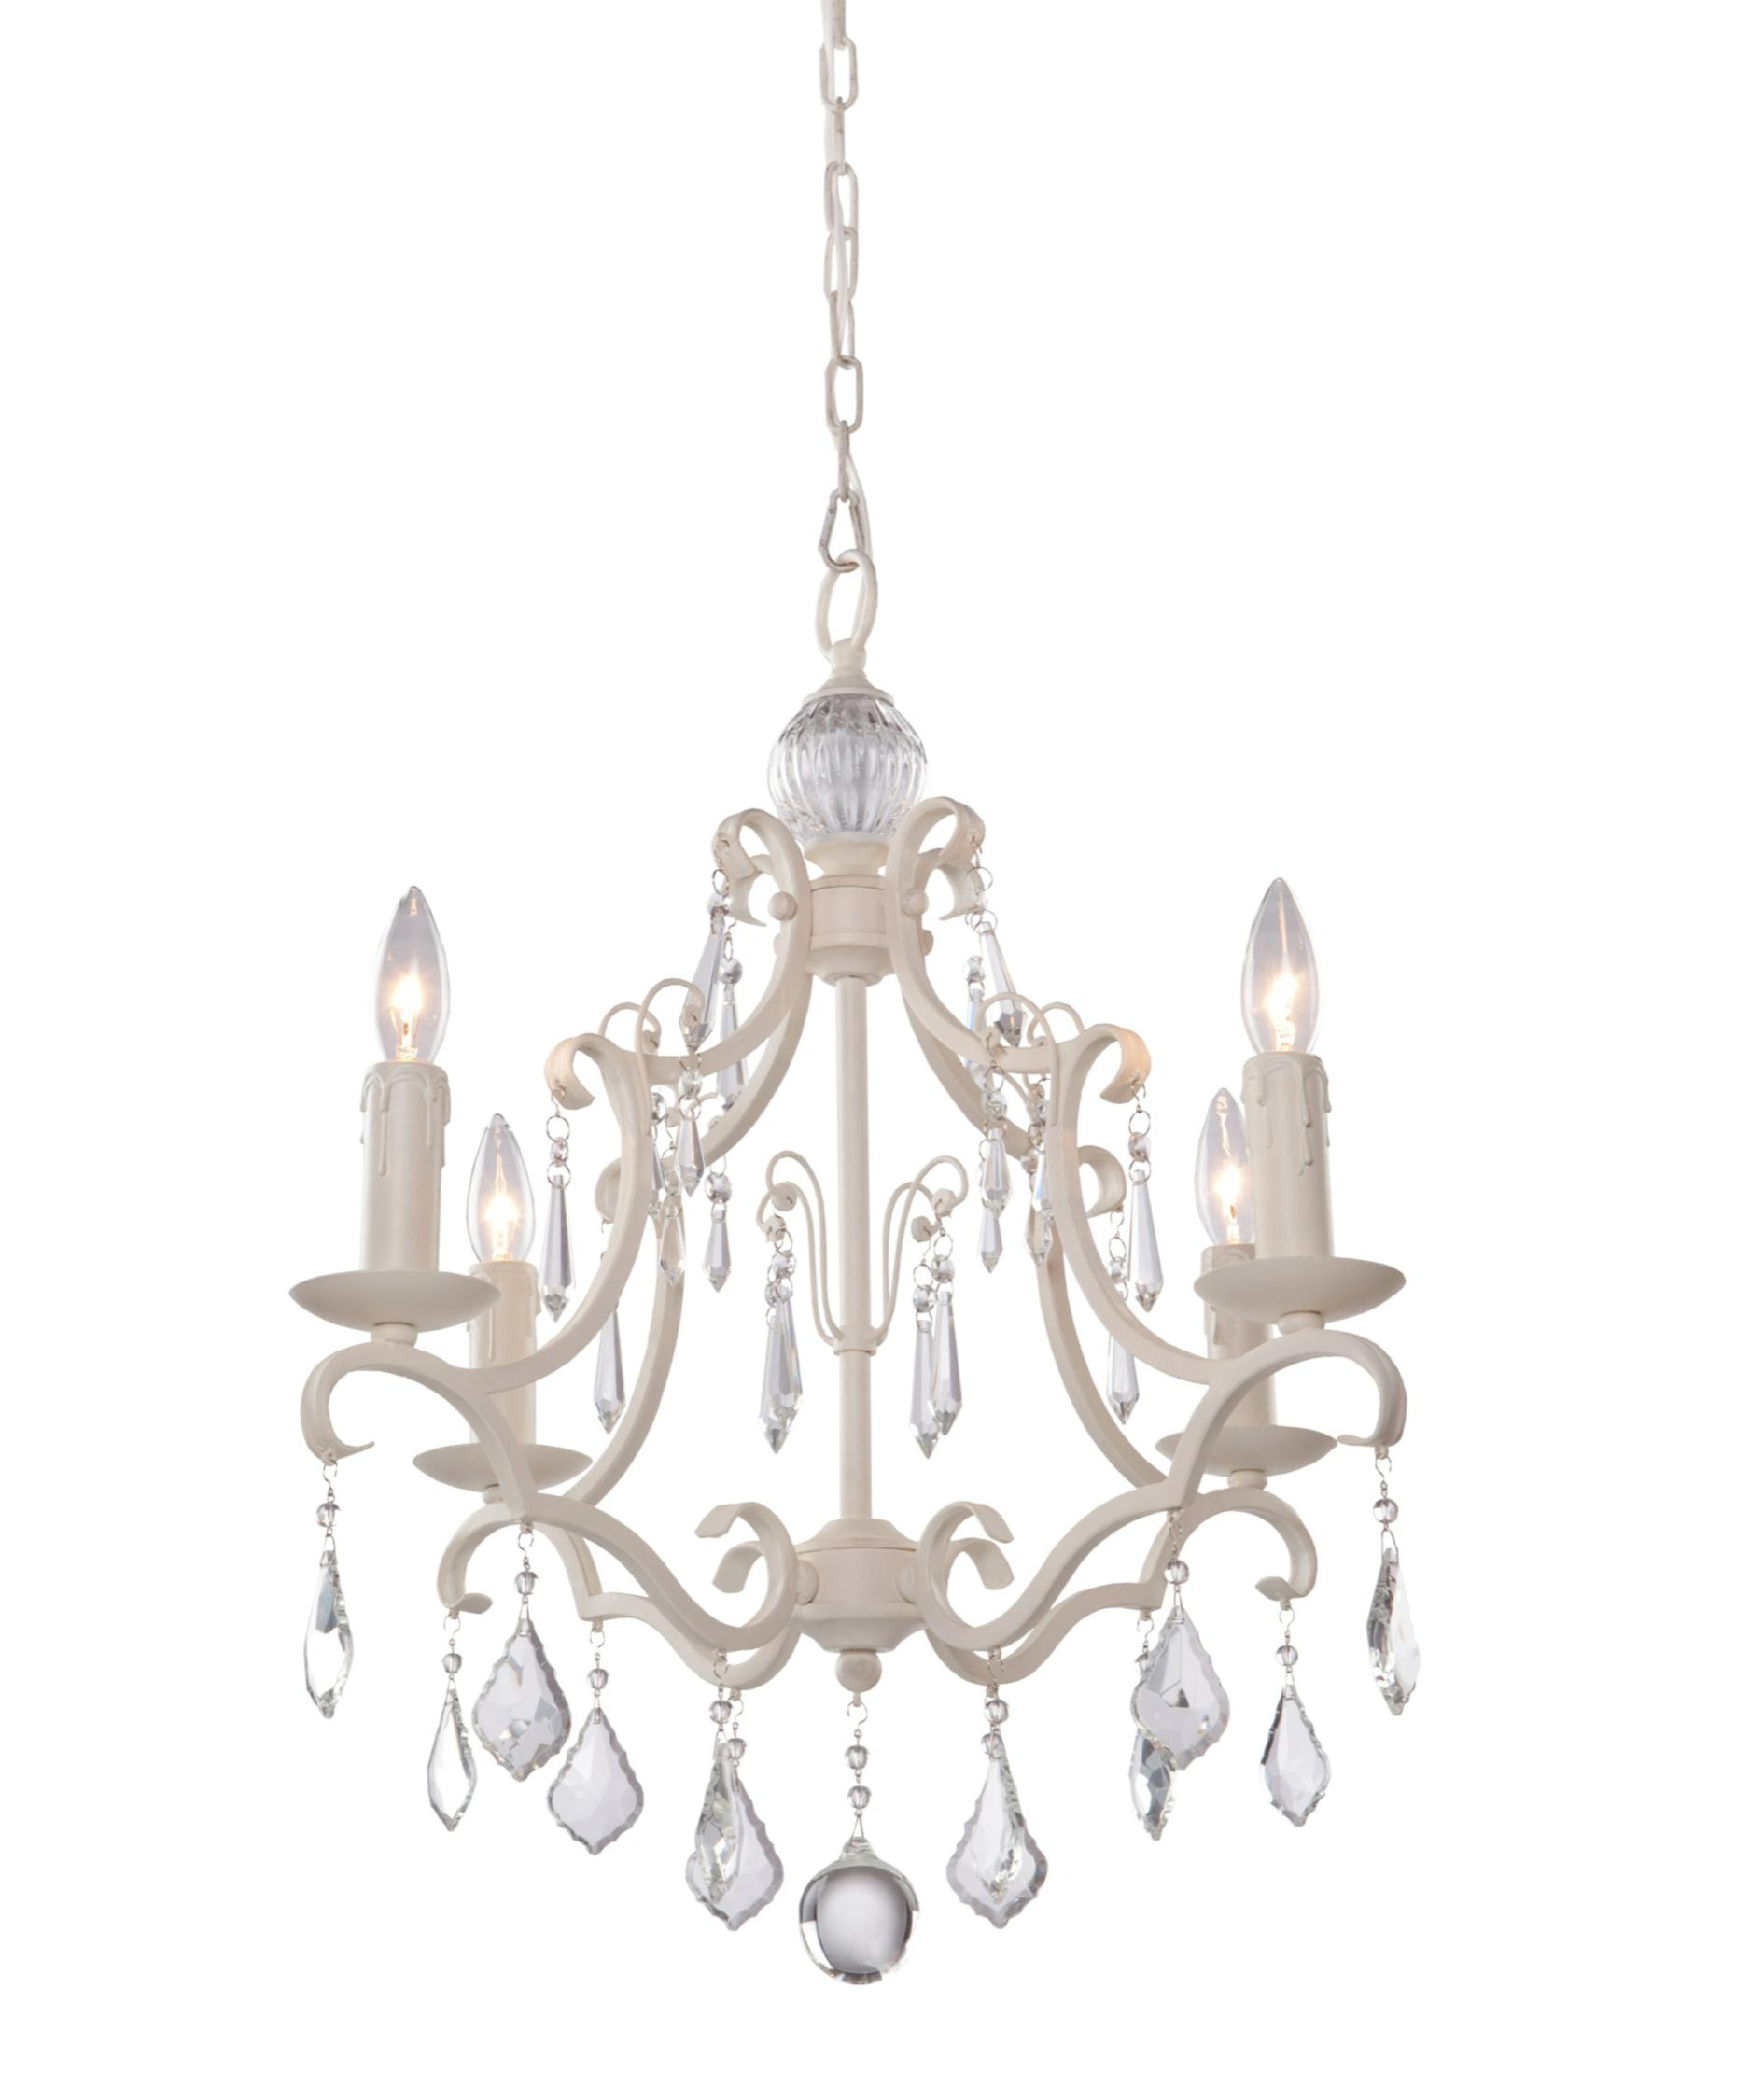 Artcraft Cl1574 Vintage 17 Inch Wide 4 Light Mini Chandelier Pertaining To Chandeliers Vintage (Image 5 of 15)